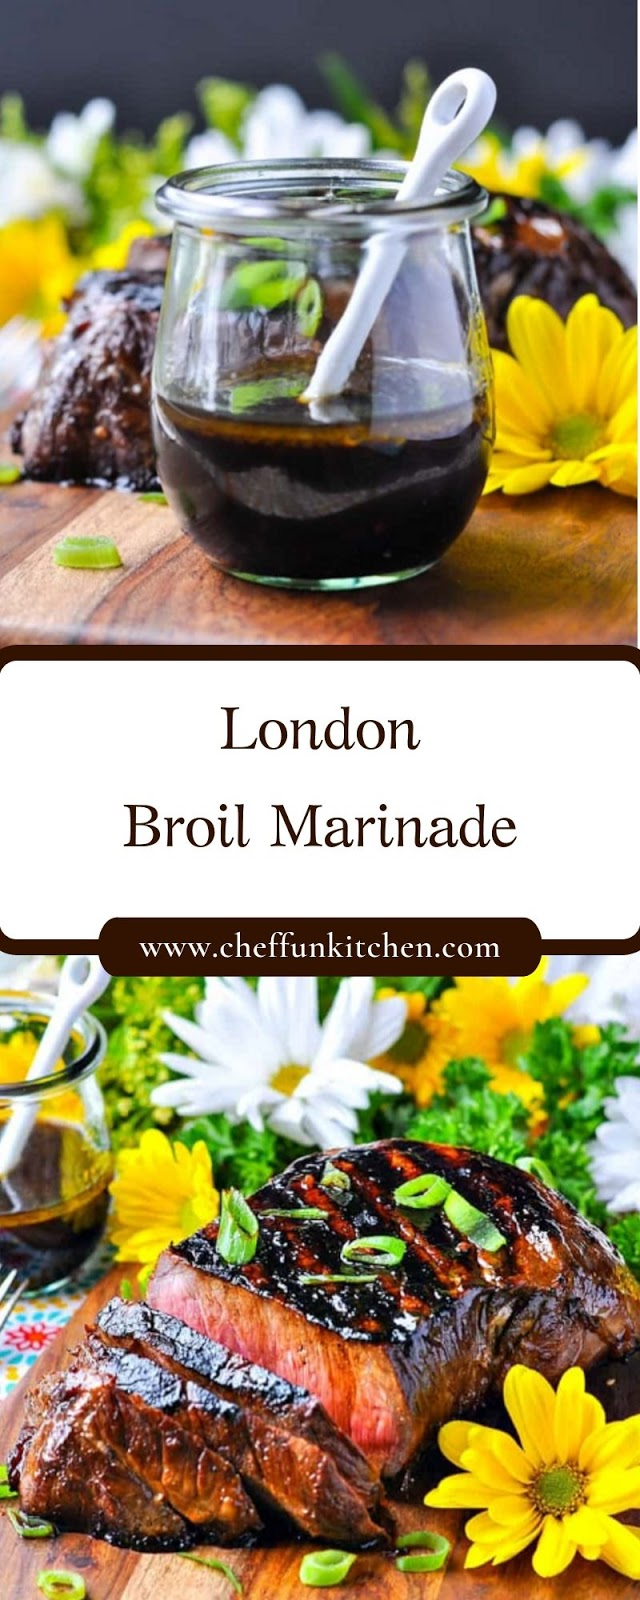 London Broil Marinade